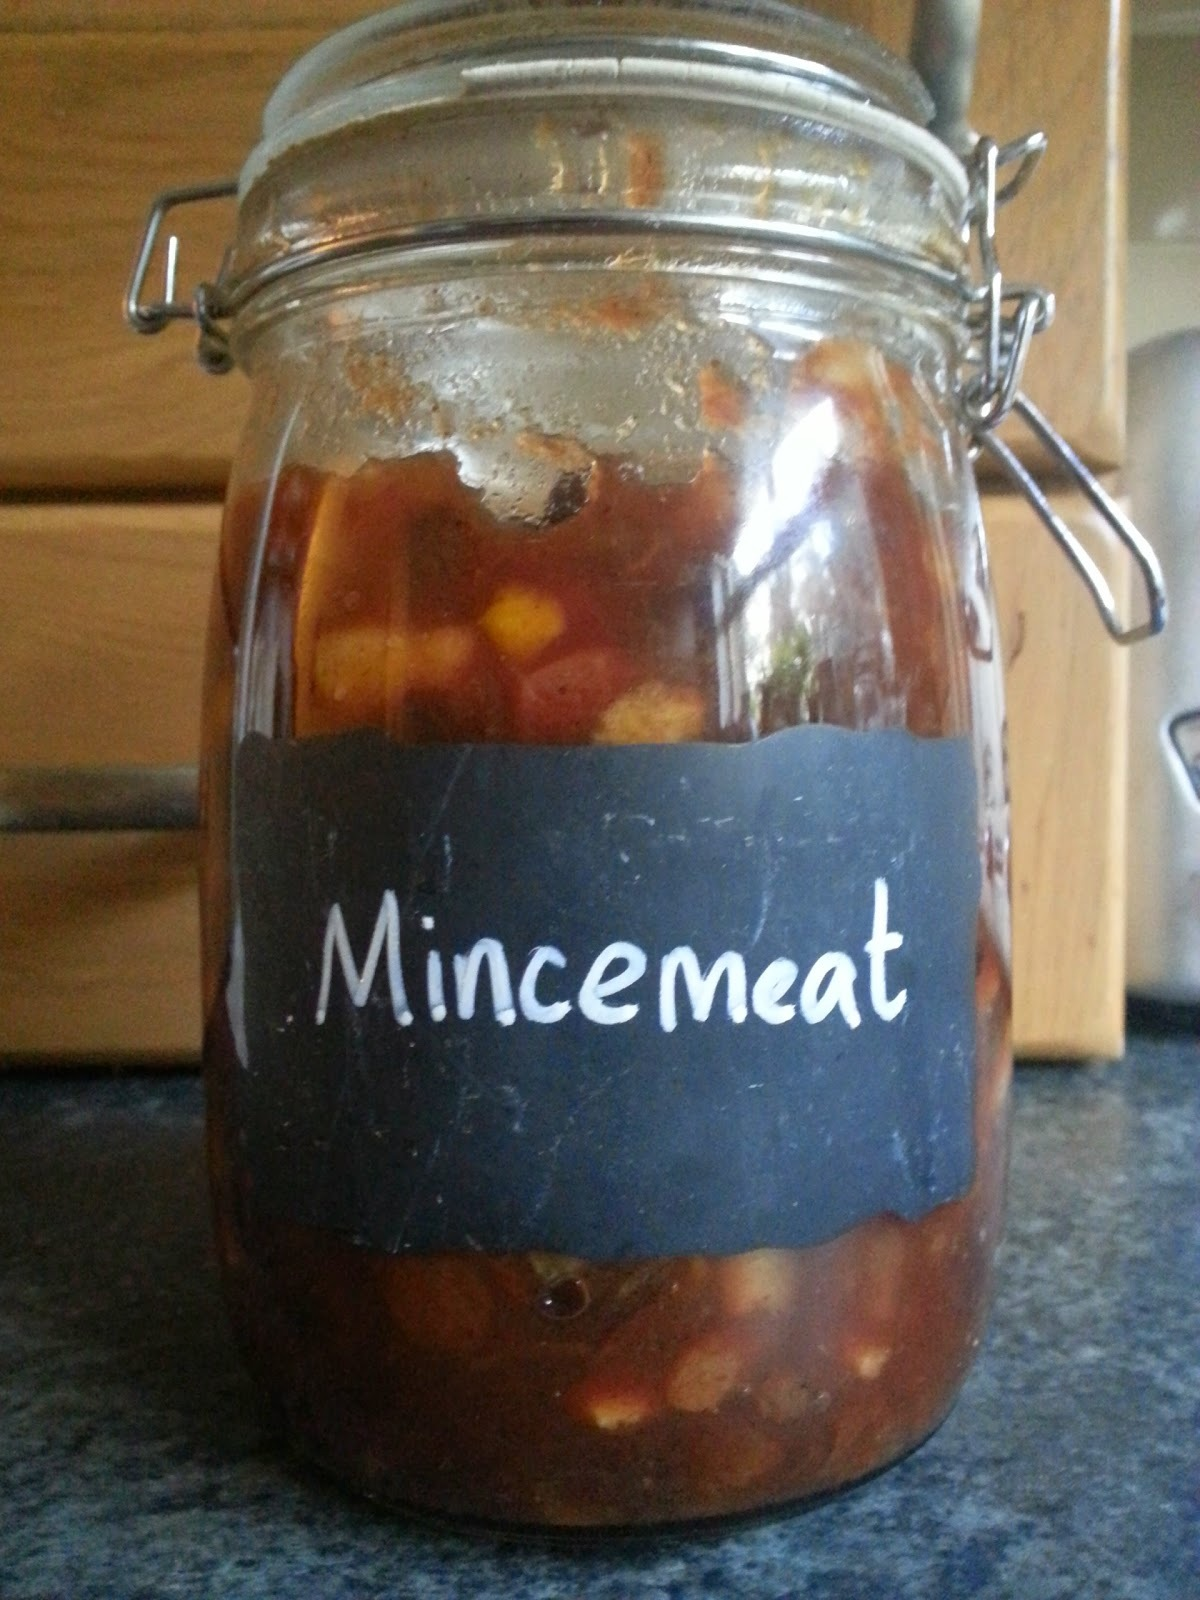 Make it Monday - Homemade Mincemeat